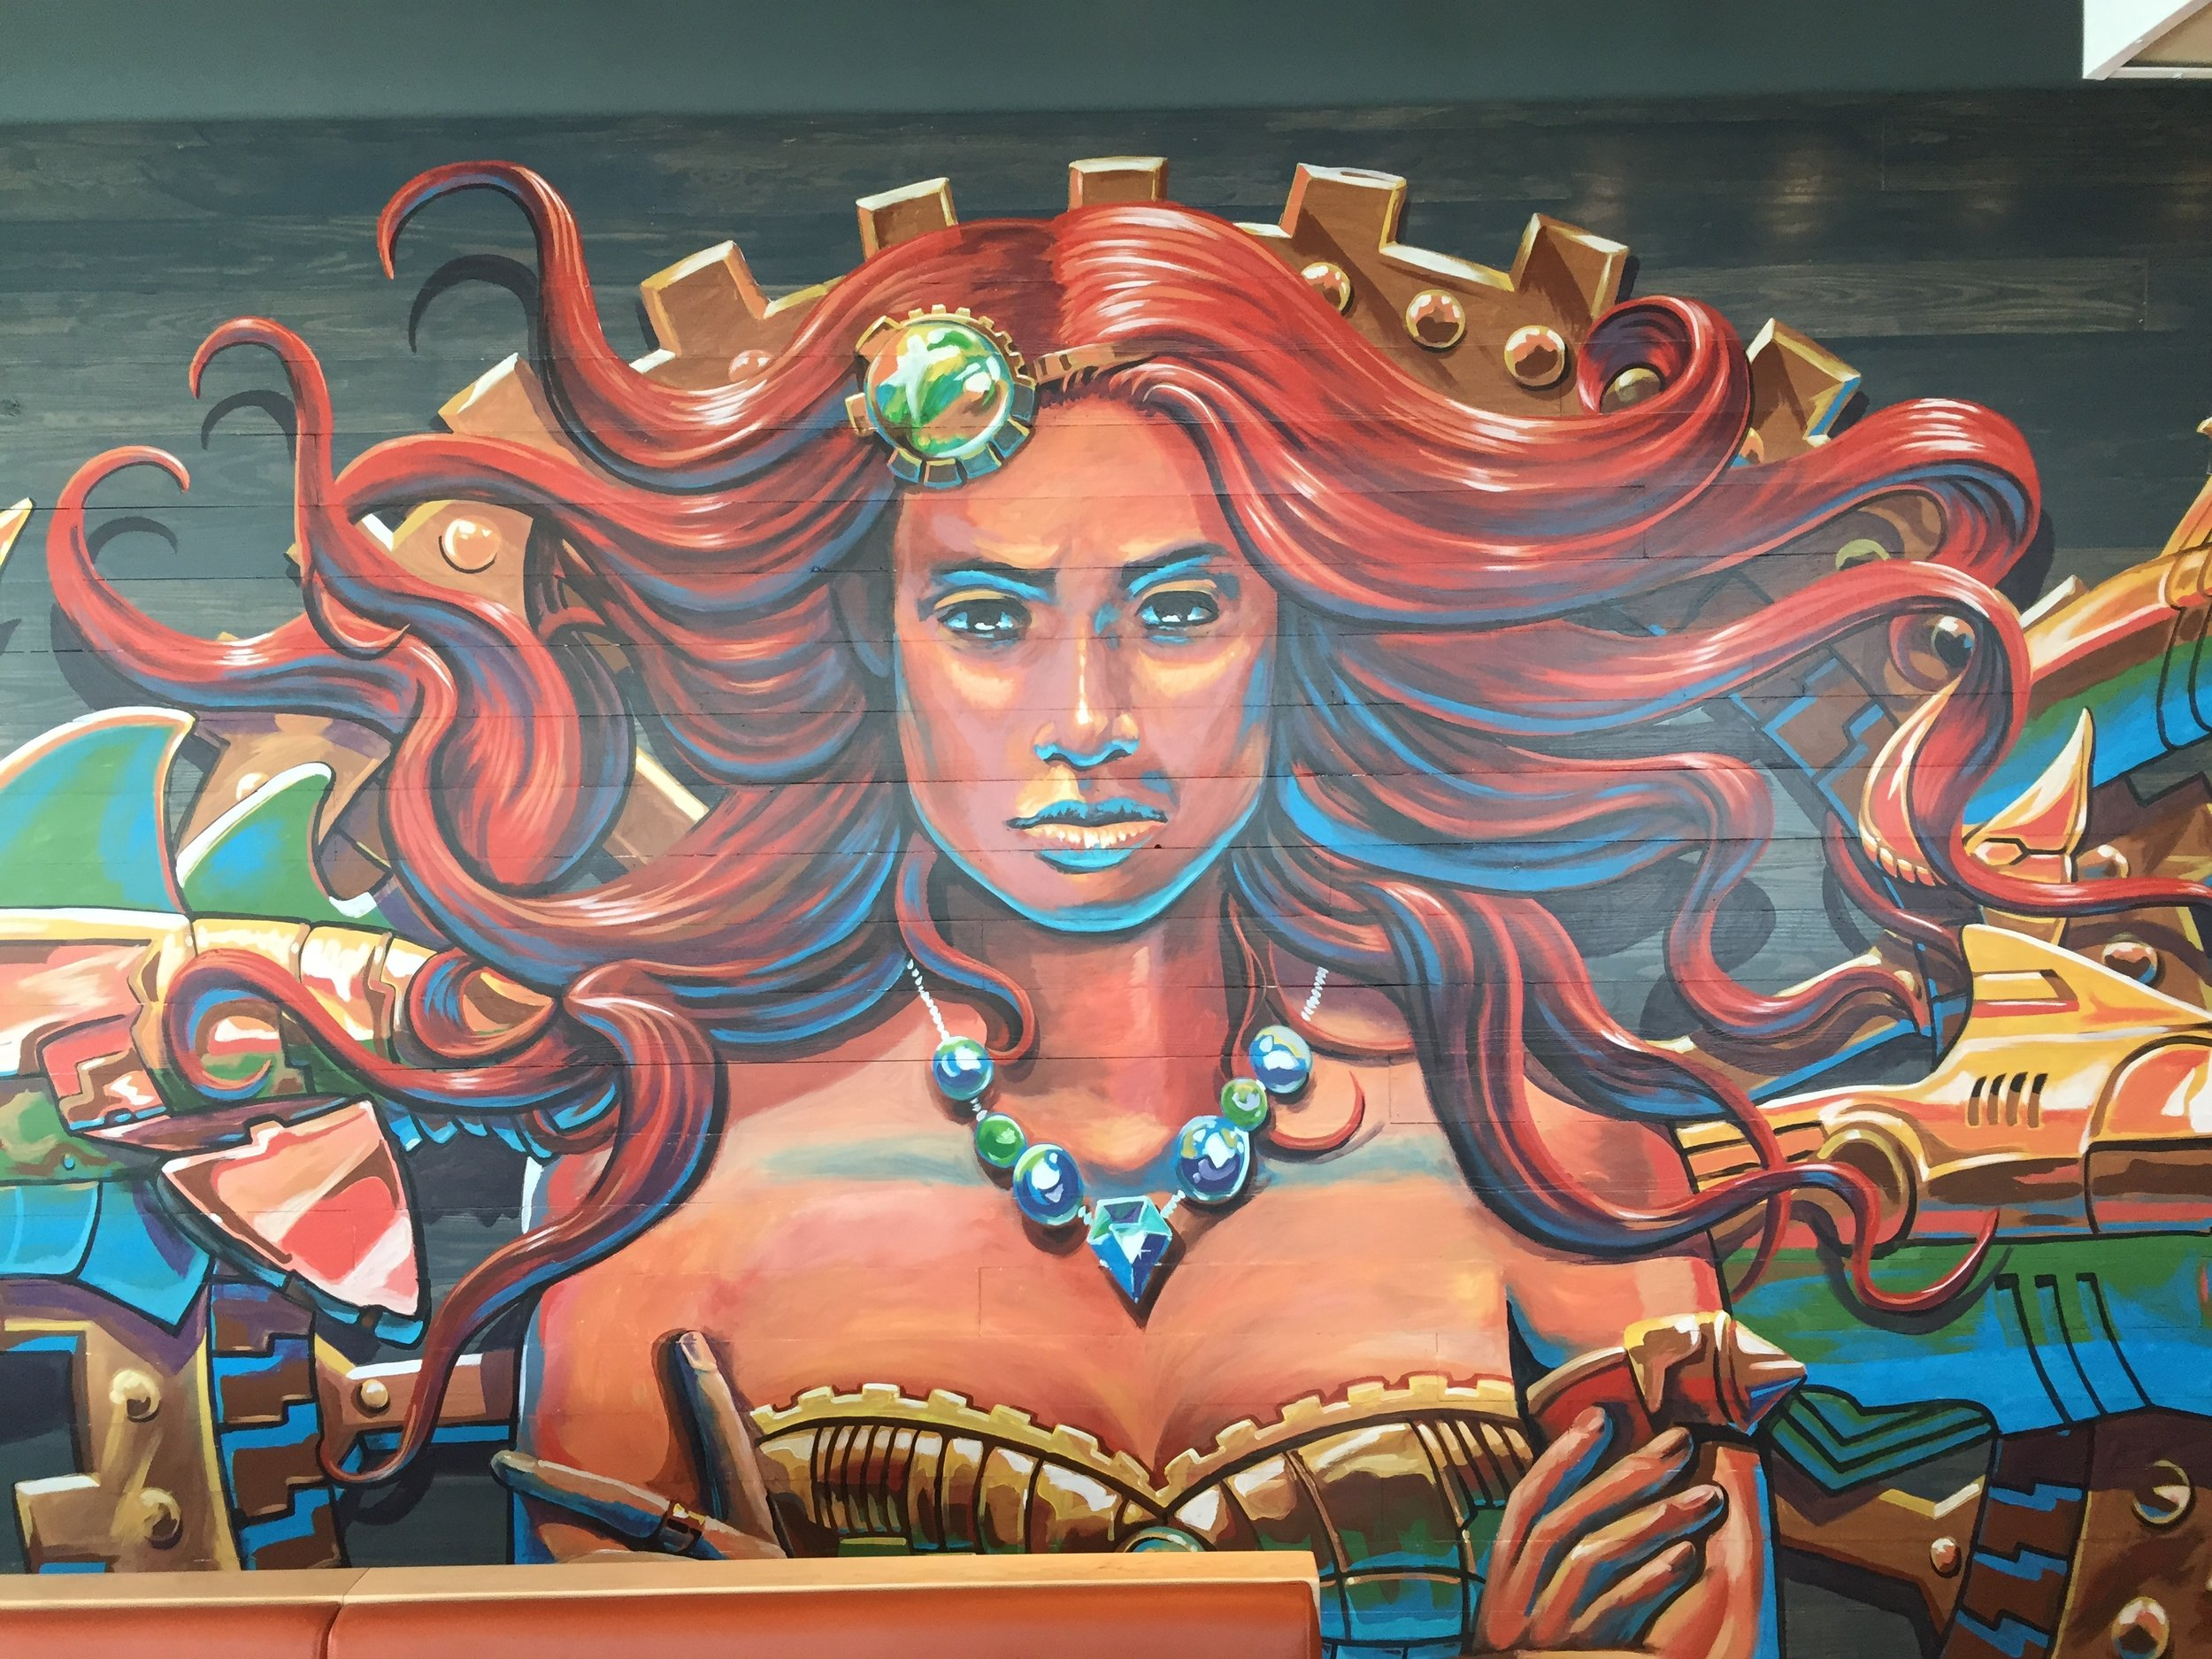 Tijuana Flats: Mermaid